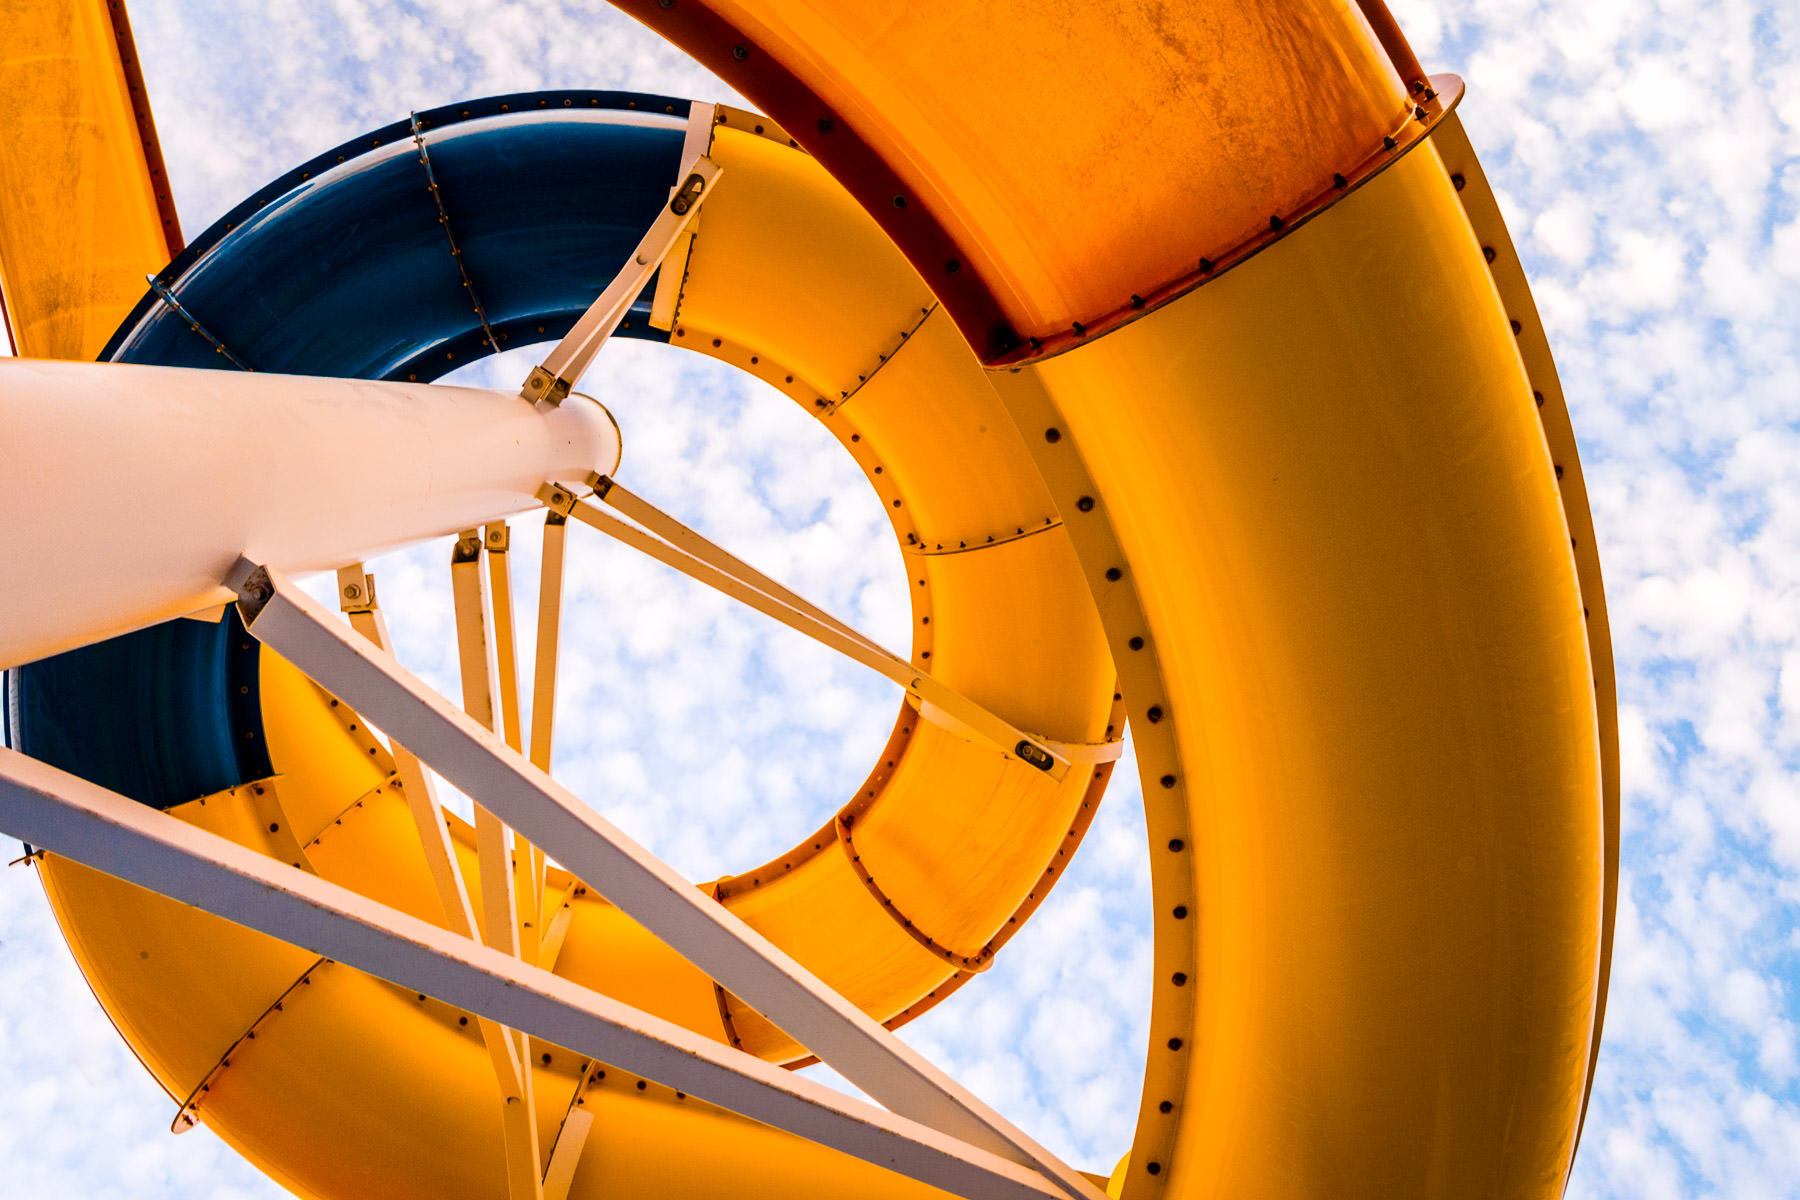 Abstract detail of one of the water slides aboard the cruise ship Carnival Magic.